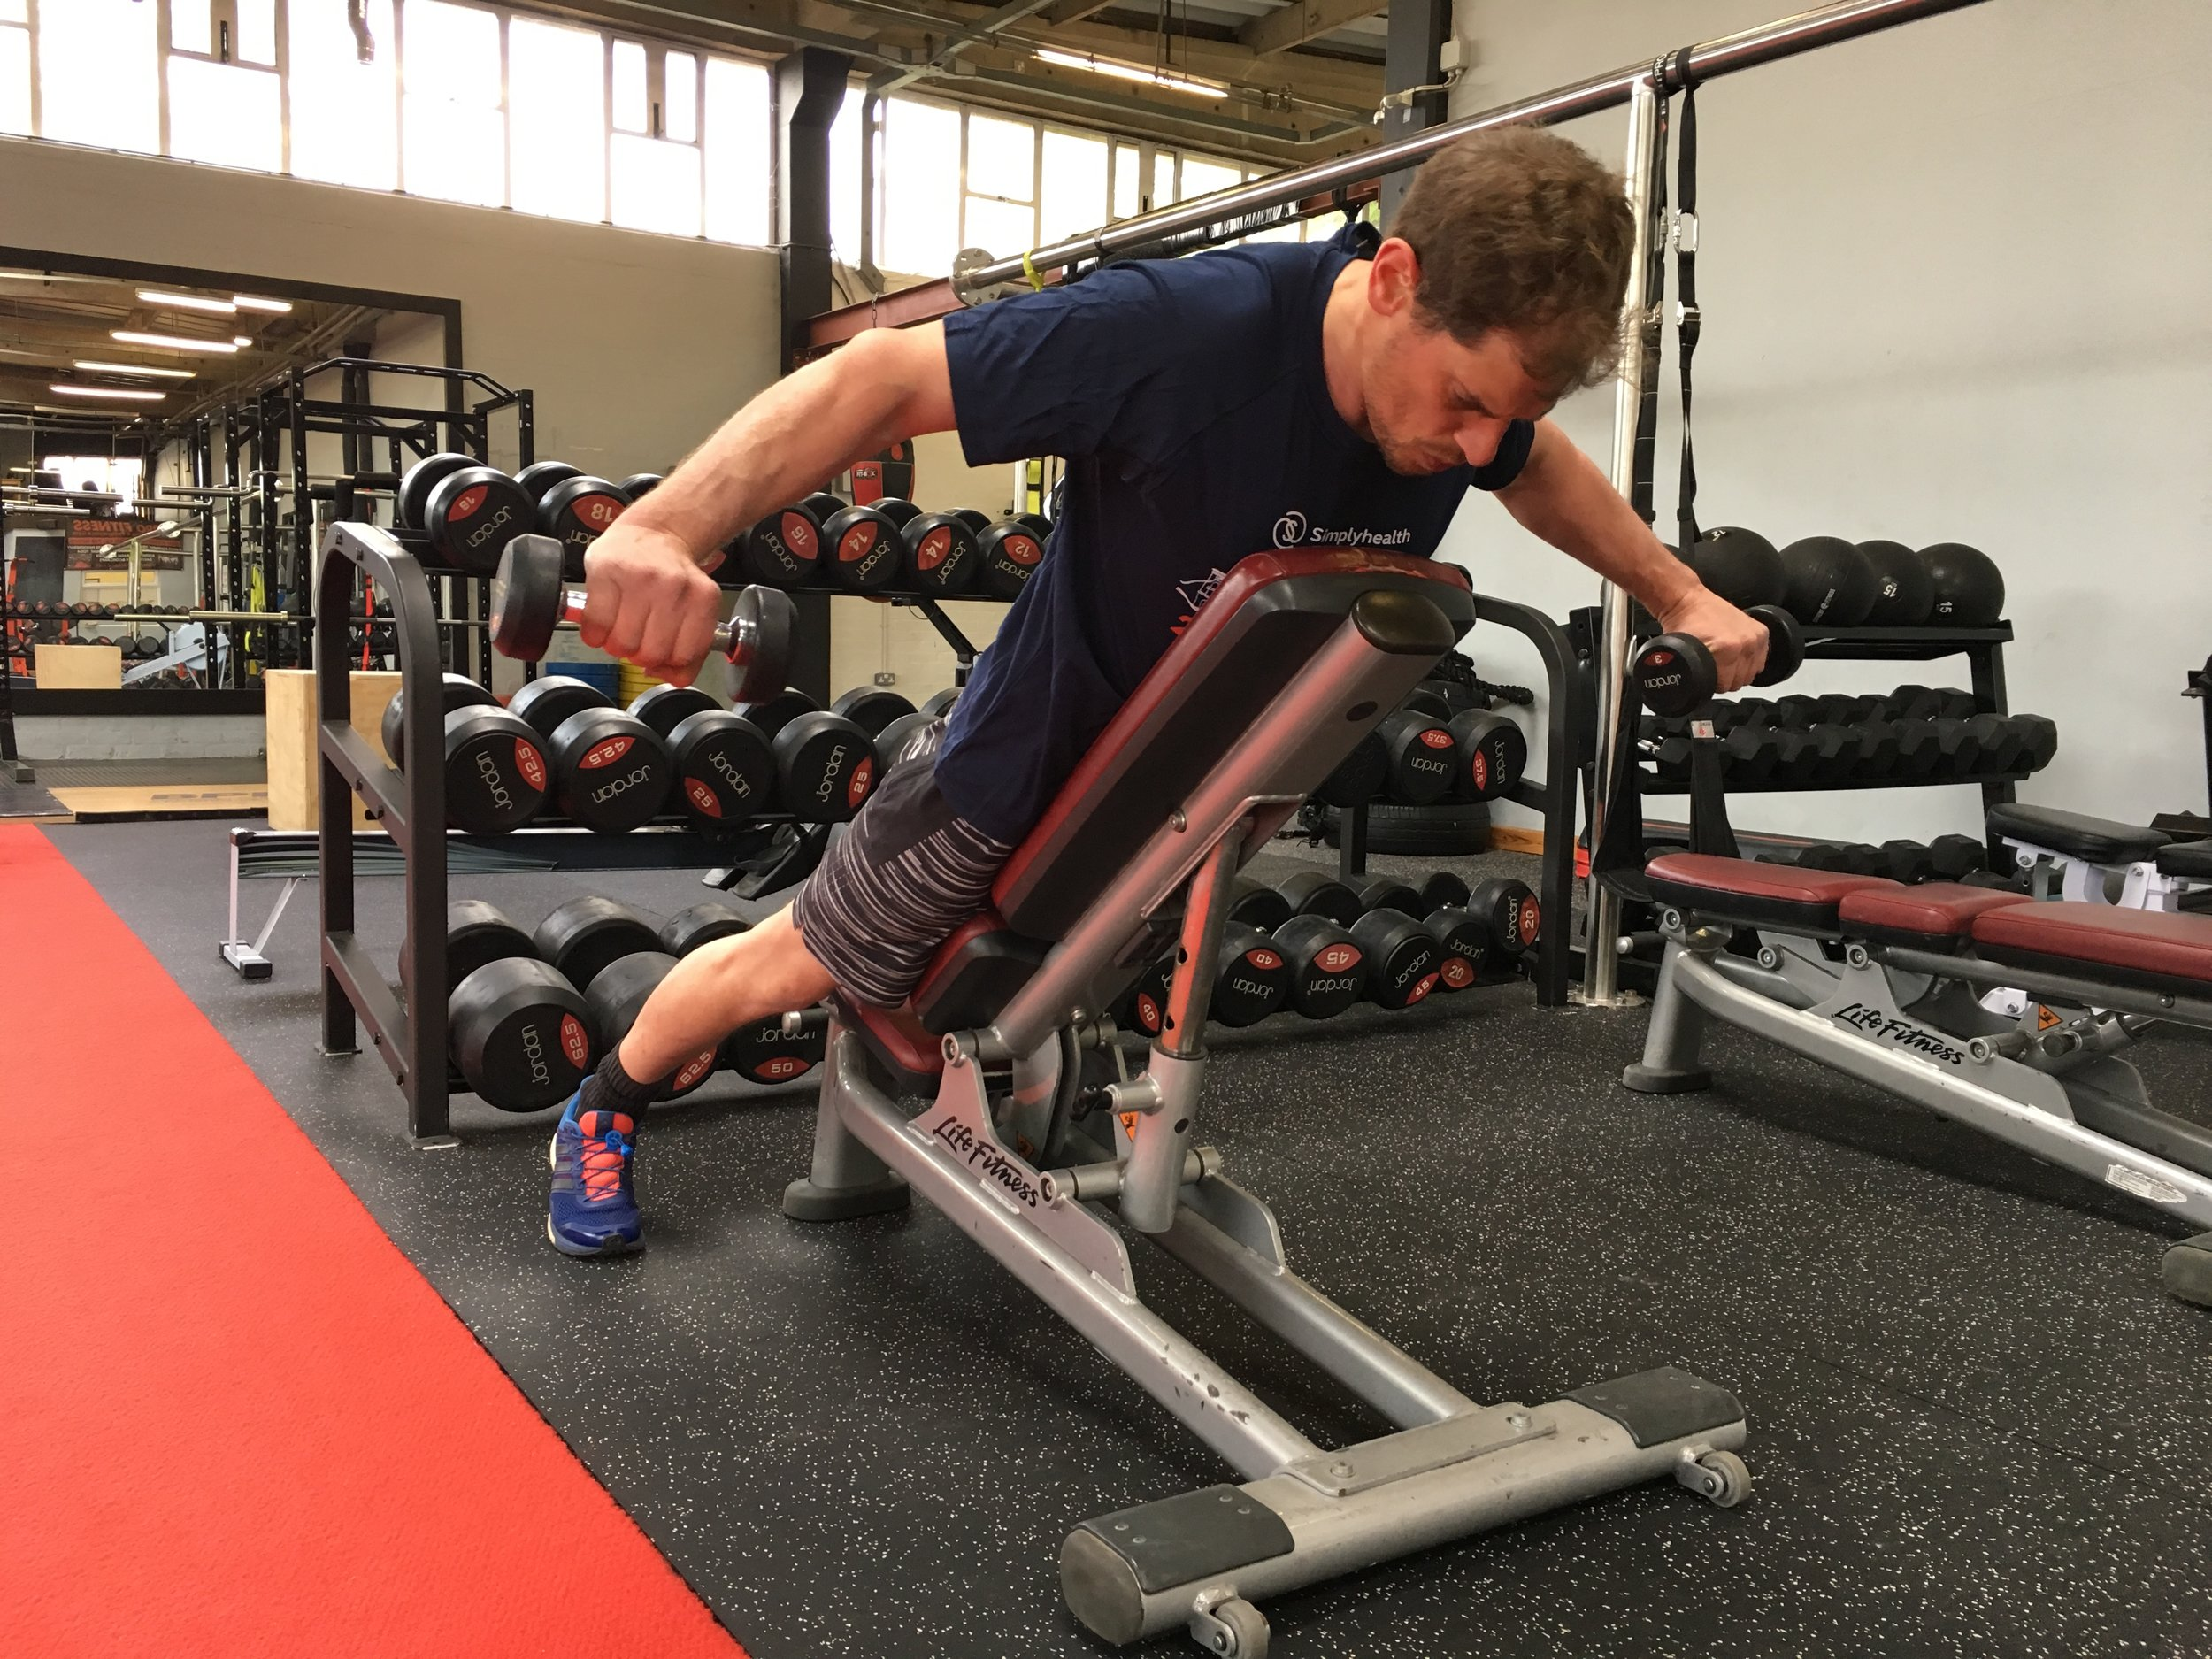 Bespoke Training. - Training sessions are tailored to suit your ability and needs. Expect to be put through your paces with master trainers helping you through the challenges programmed sessions.